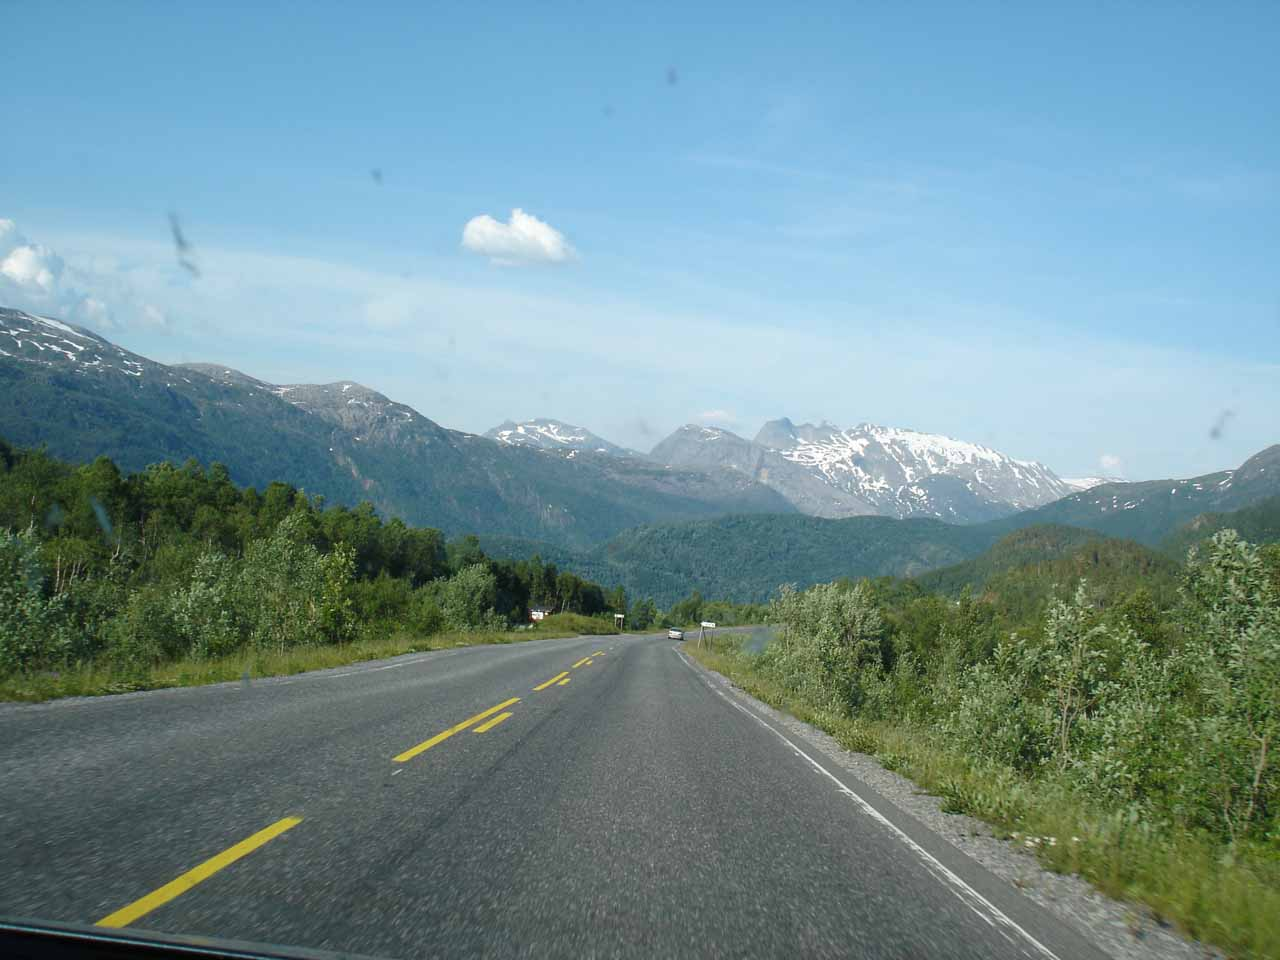 This was the scenery that dominated the long drive along the E6 towards Narvik